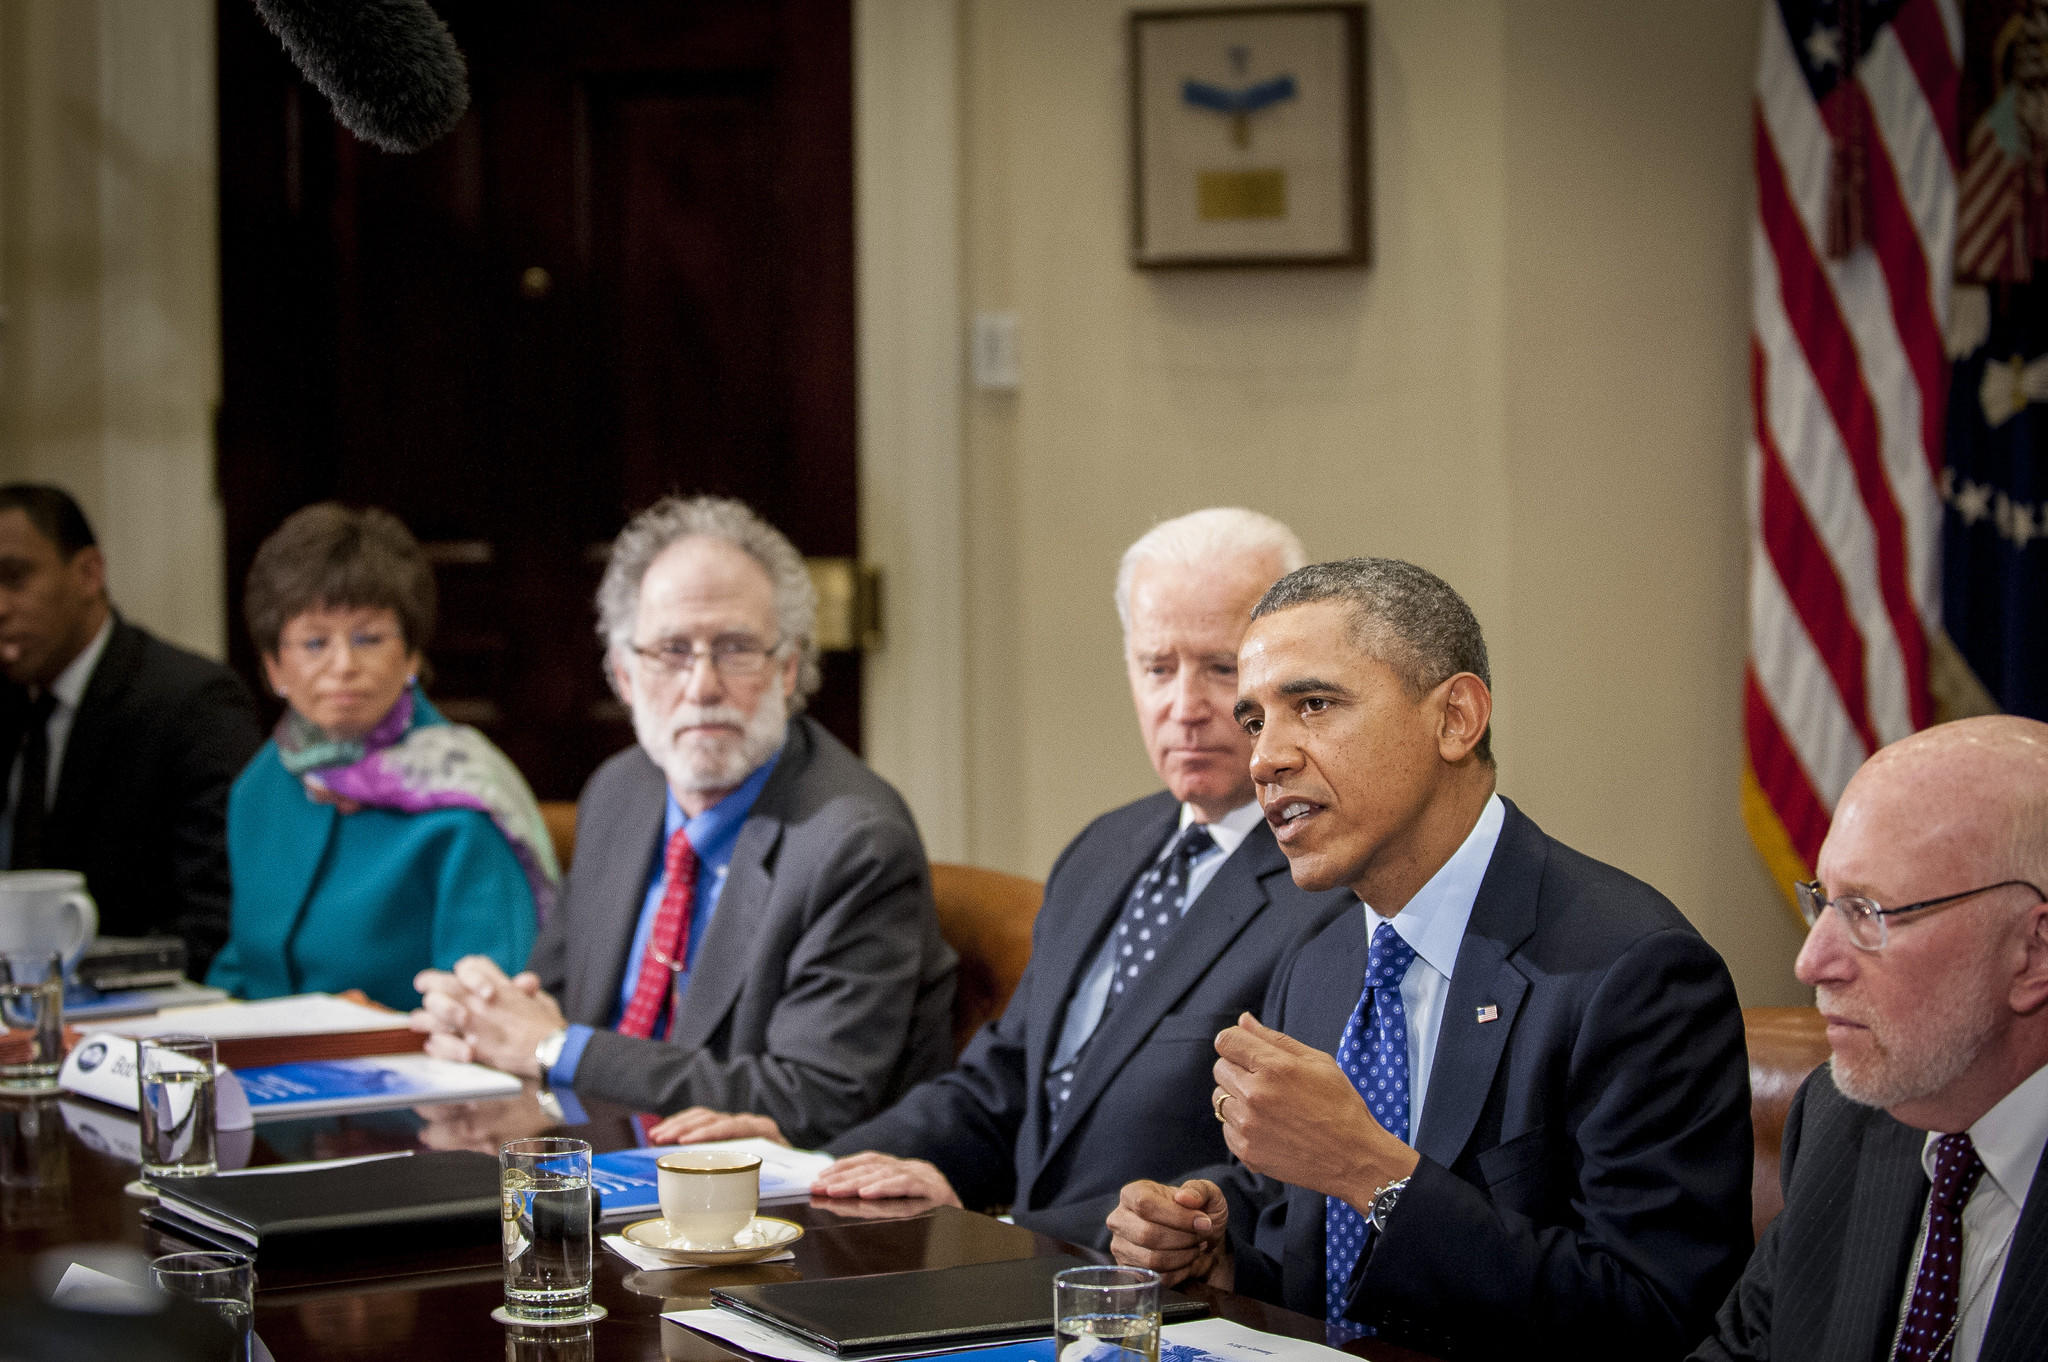 President Barack Obama and the Vice President Joe Biden meet with members of the Presidential Commission on Election Administration at the White House.